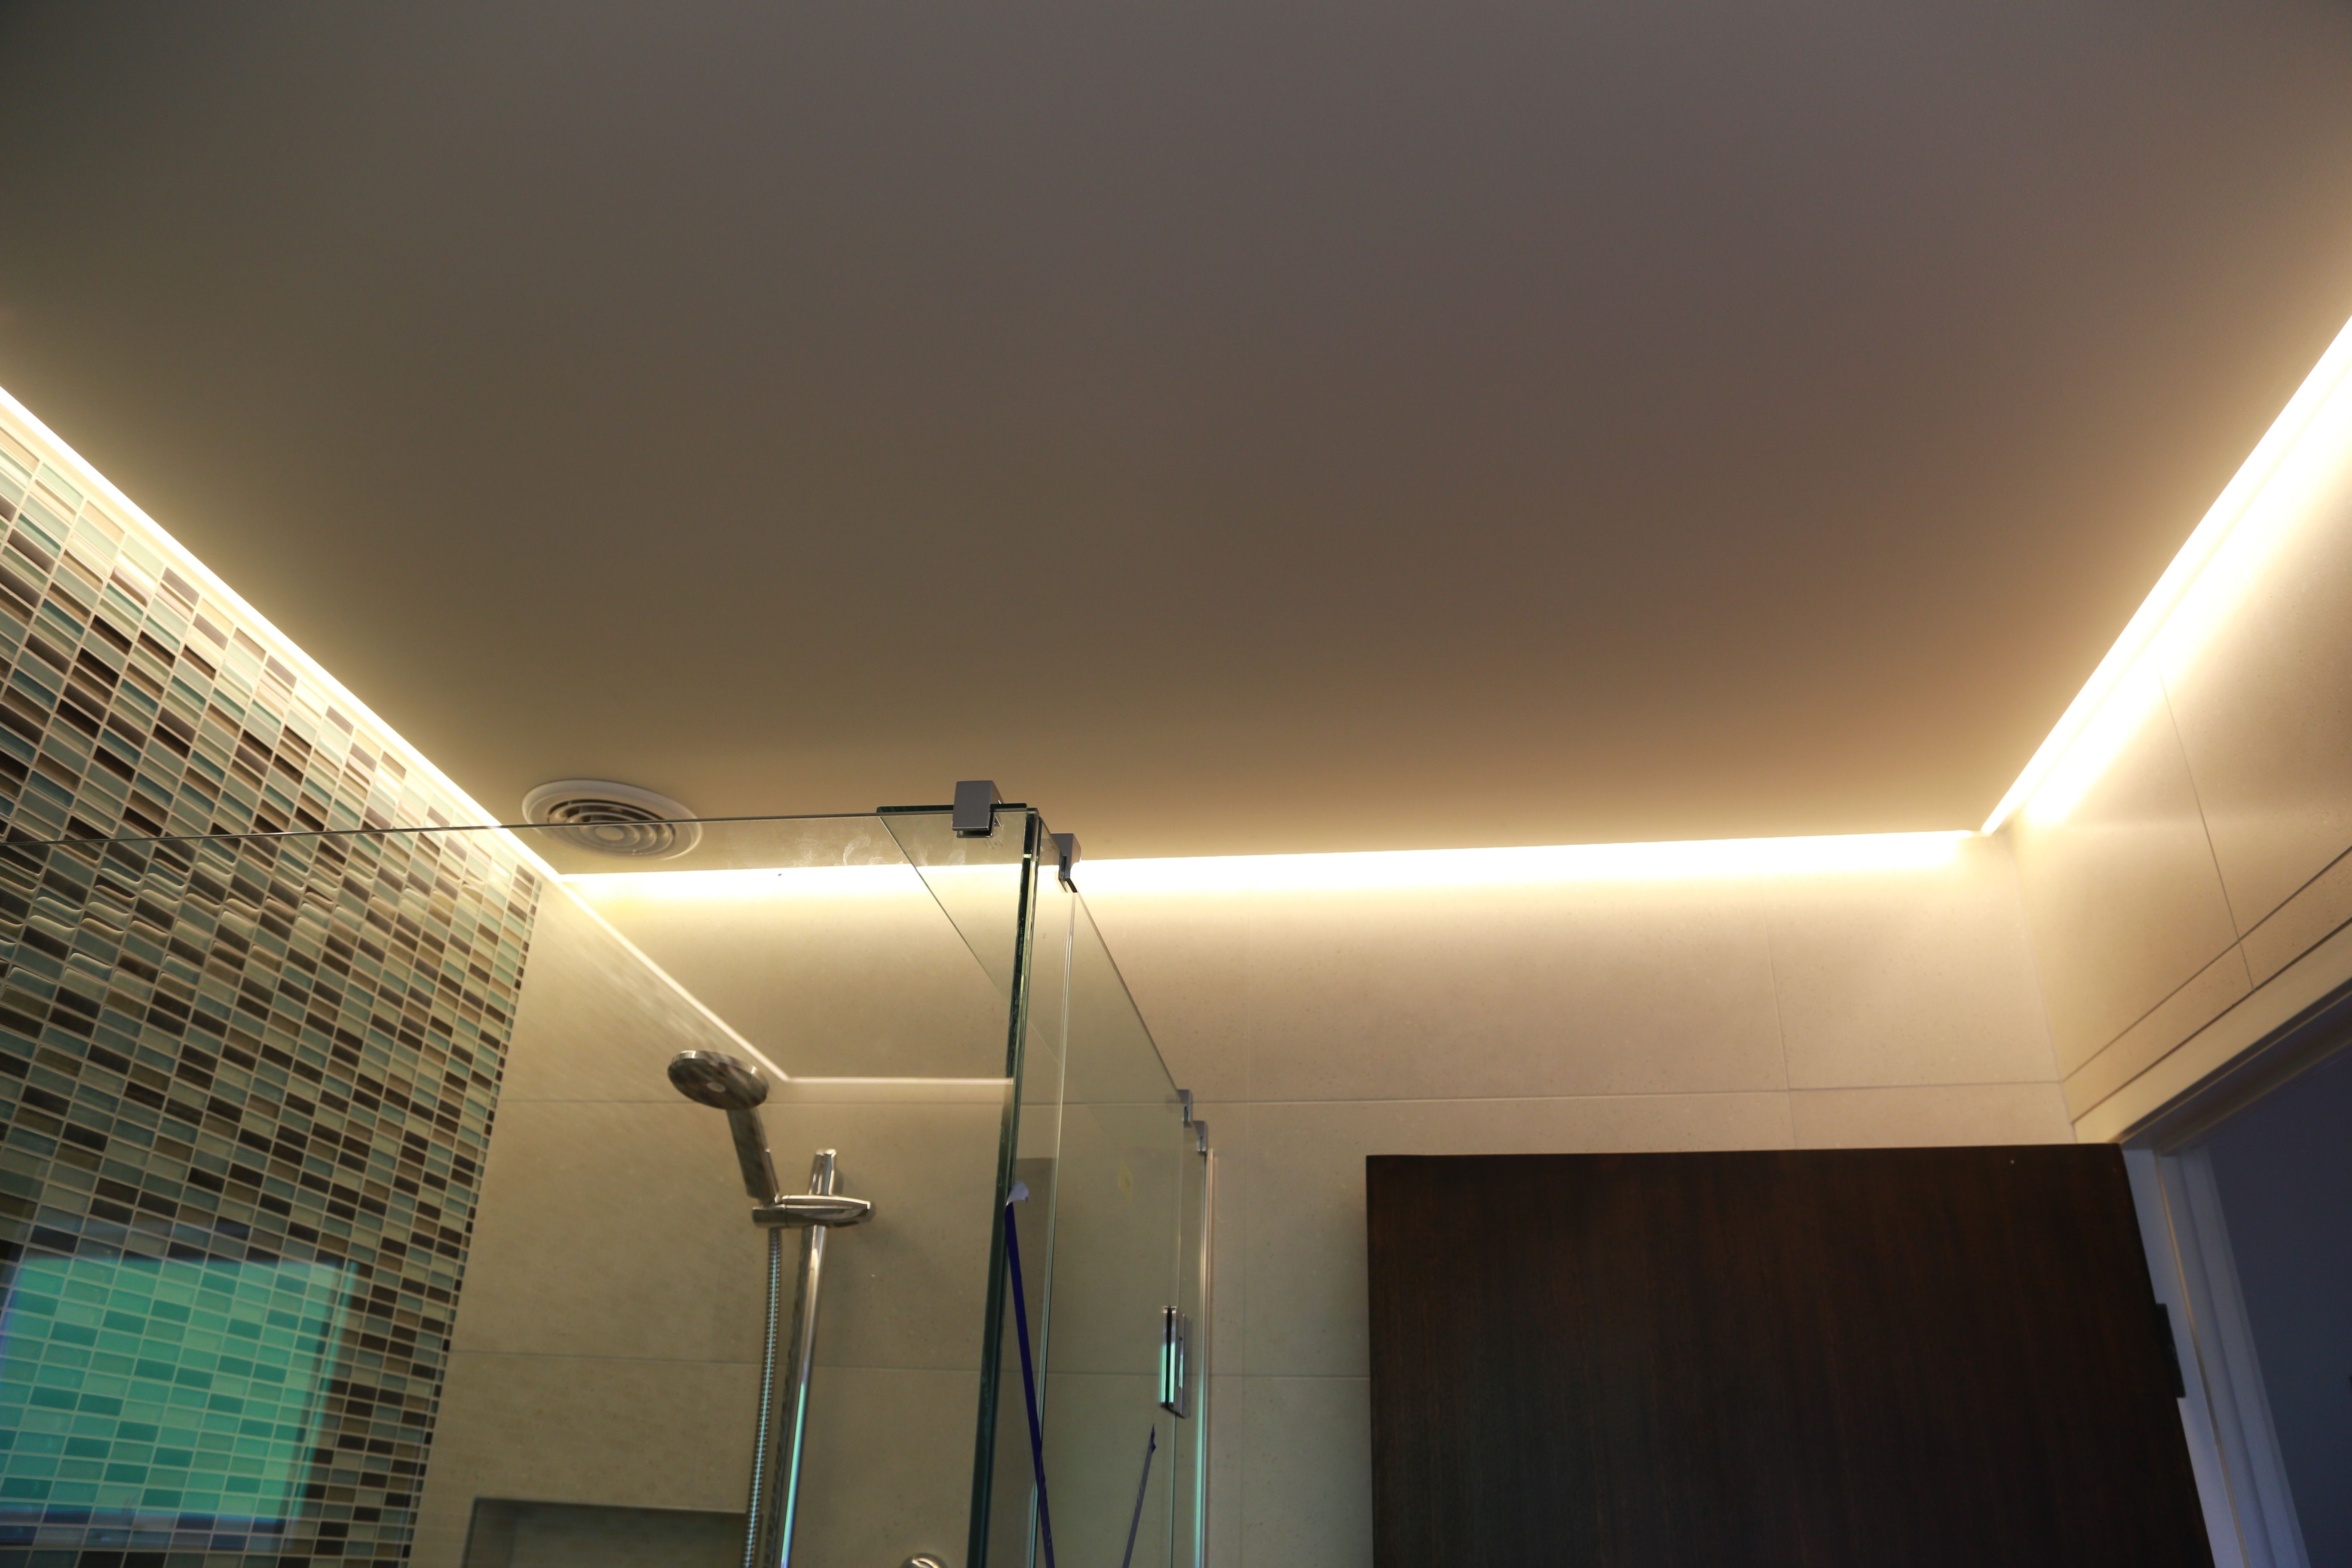 Bathroom Light Fixtures Used led strip in bathroom ceiling. it used as main light. | our led